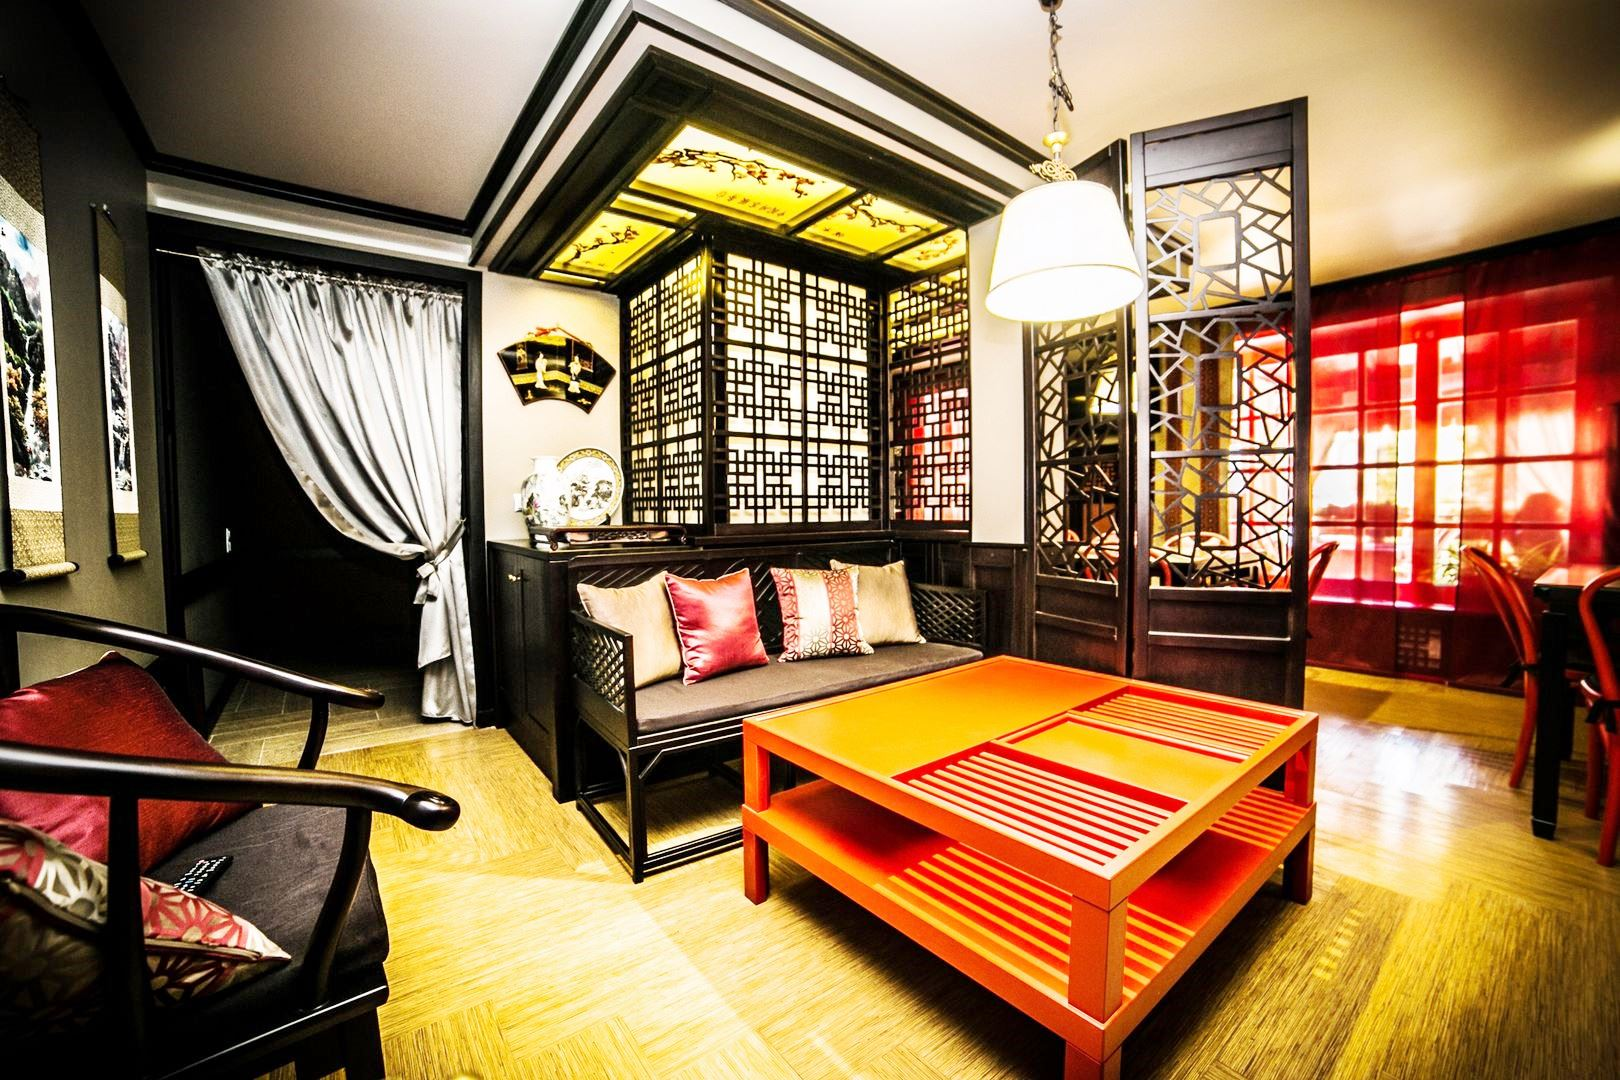 vitrina_vistavochnaya_stend_magazin_bar_restoran_kommercheskaya_butique_reseption_office_gostinitsa_